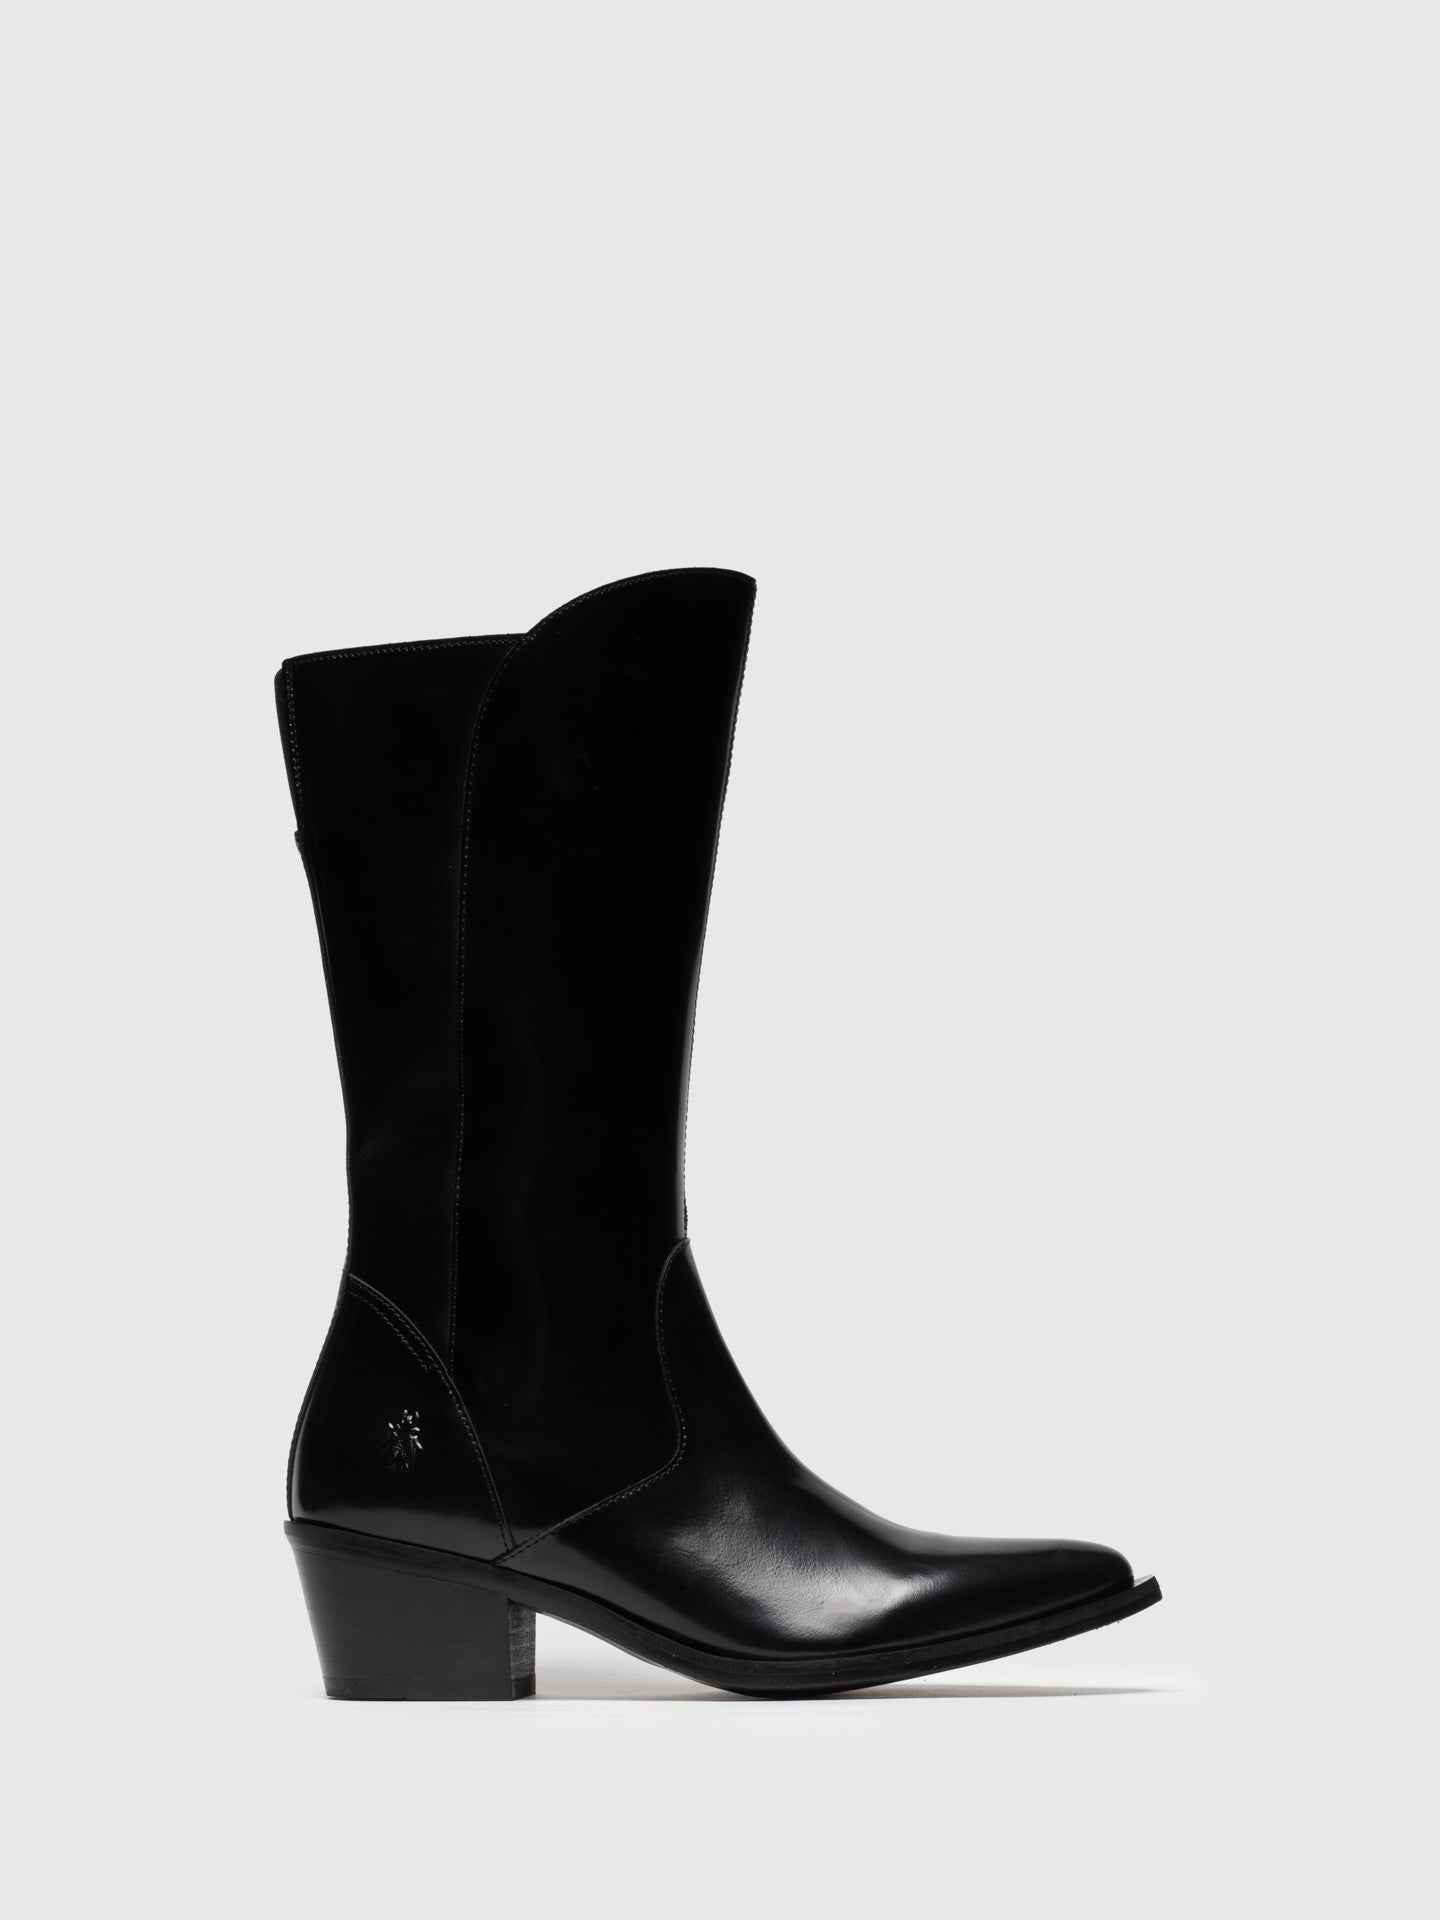 Fly London Coal Black Zip Up Boots